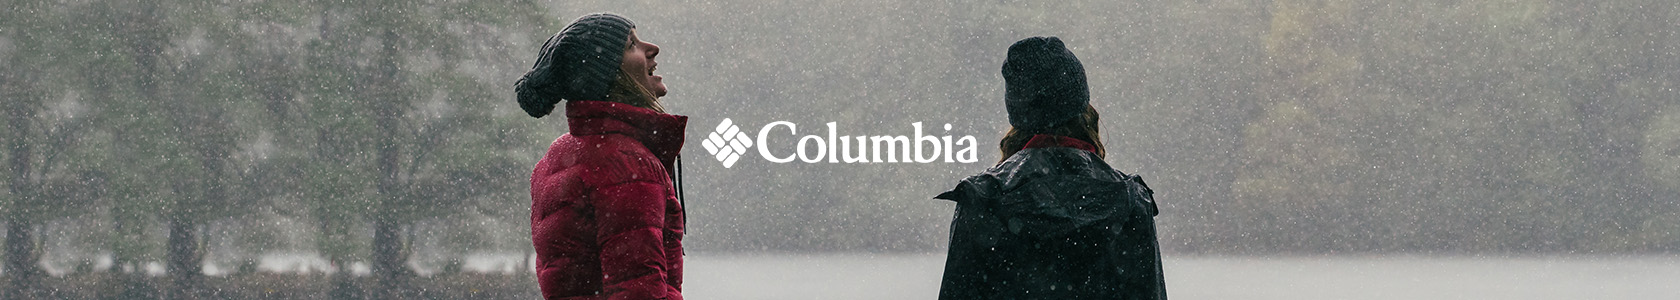 Two people are standing by a lake during falling snow, wearing Columbia clothing.